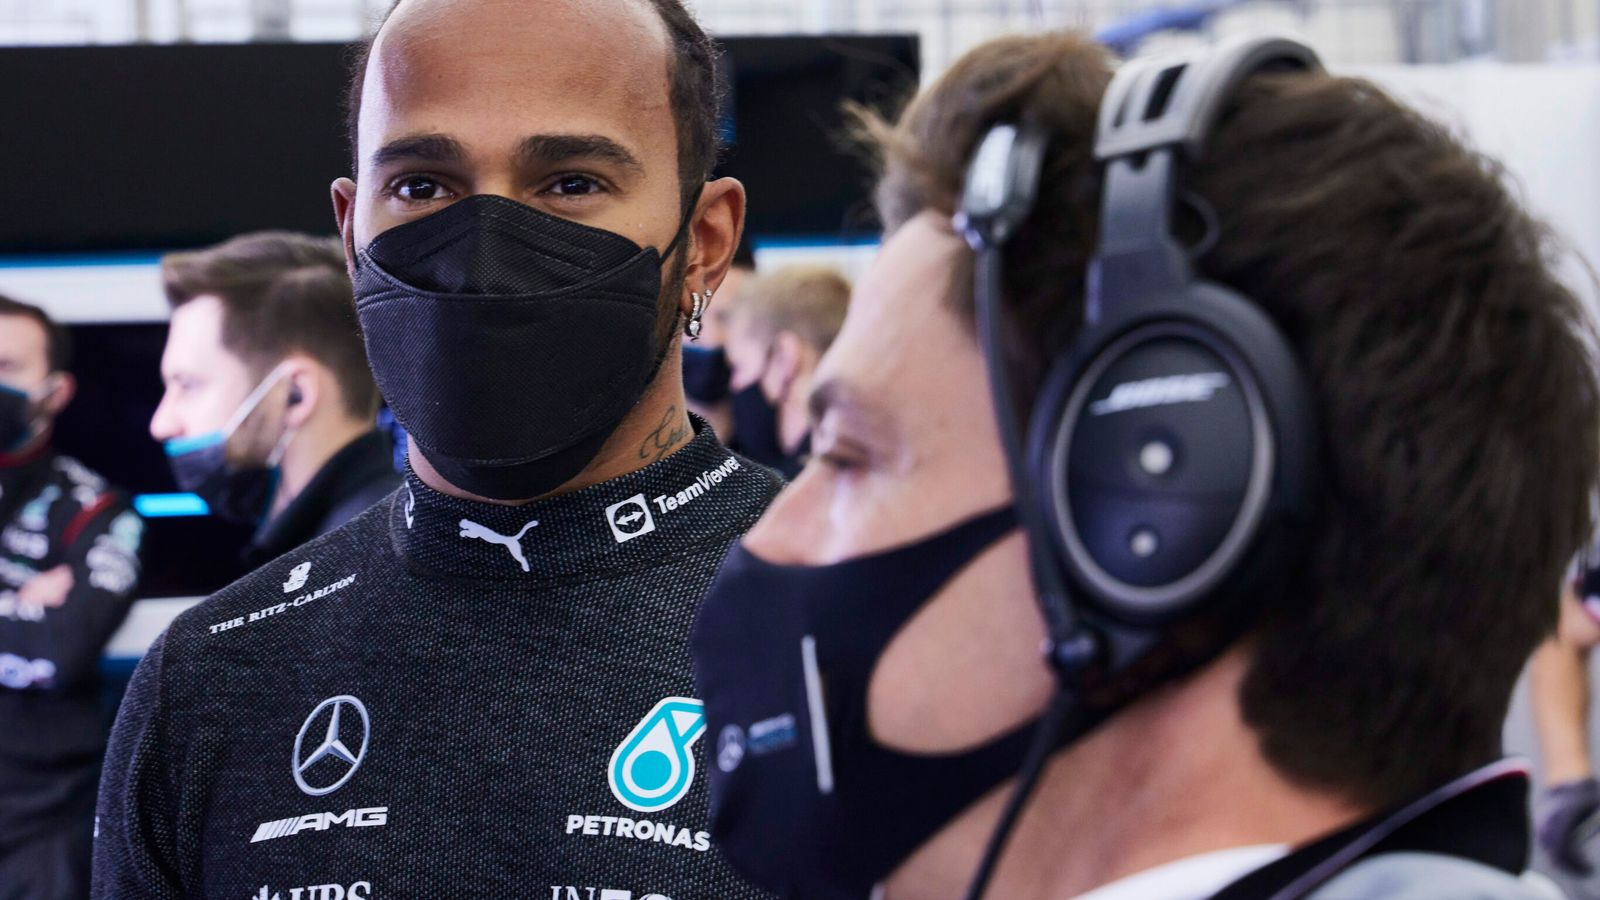 Martin Brundle: Lewis Hamilton made mistake by overruling Mercedes in Turkish GP pit-call fiasco